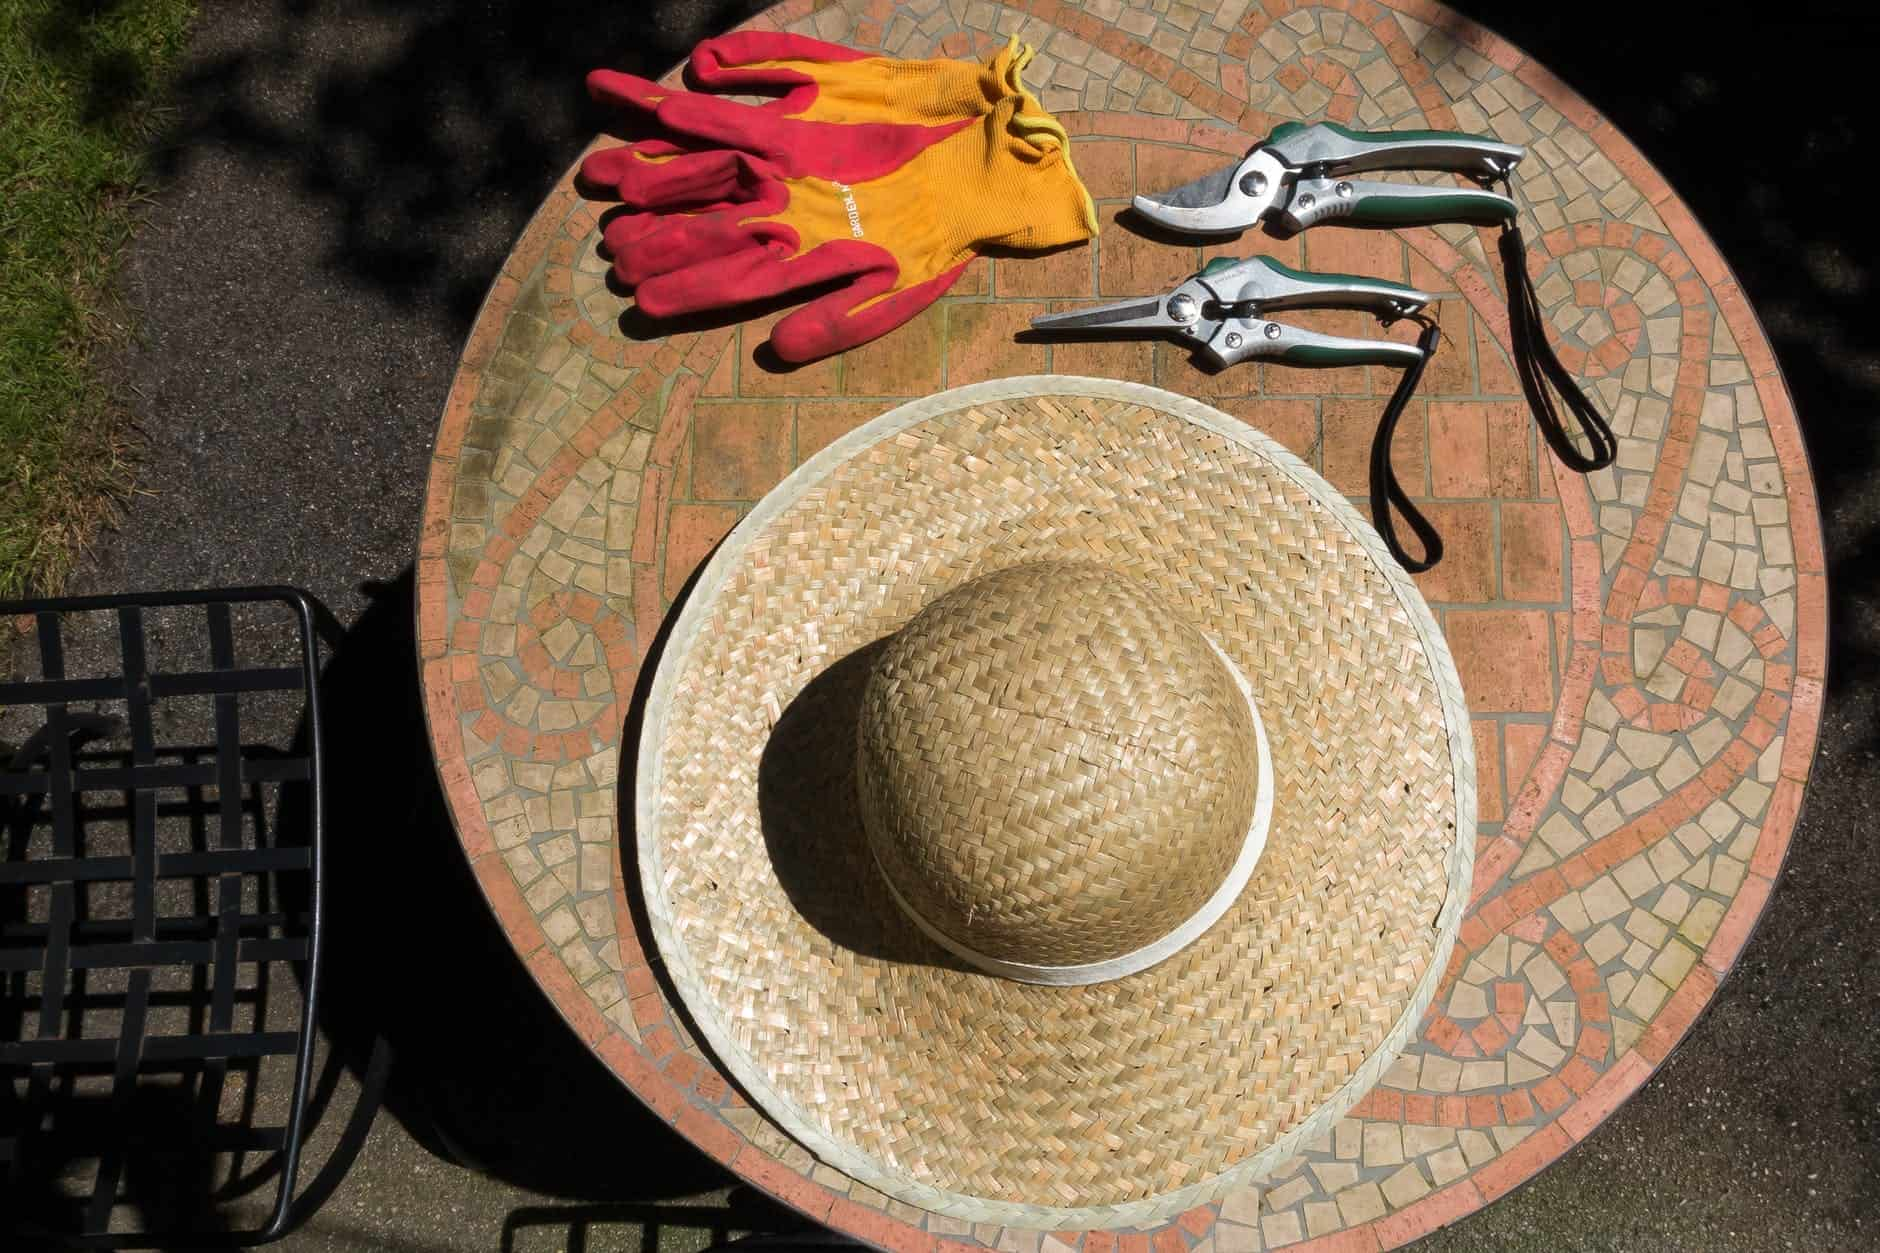 Pruning Plants Is Easier With These Garden Cutting Tools